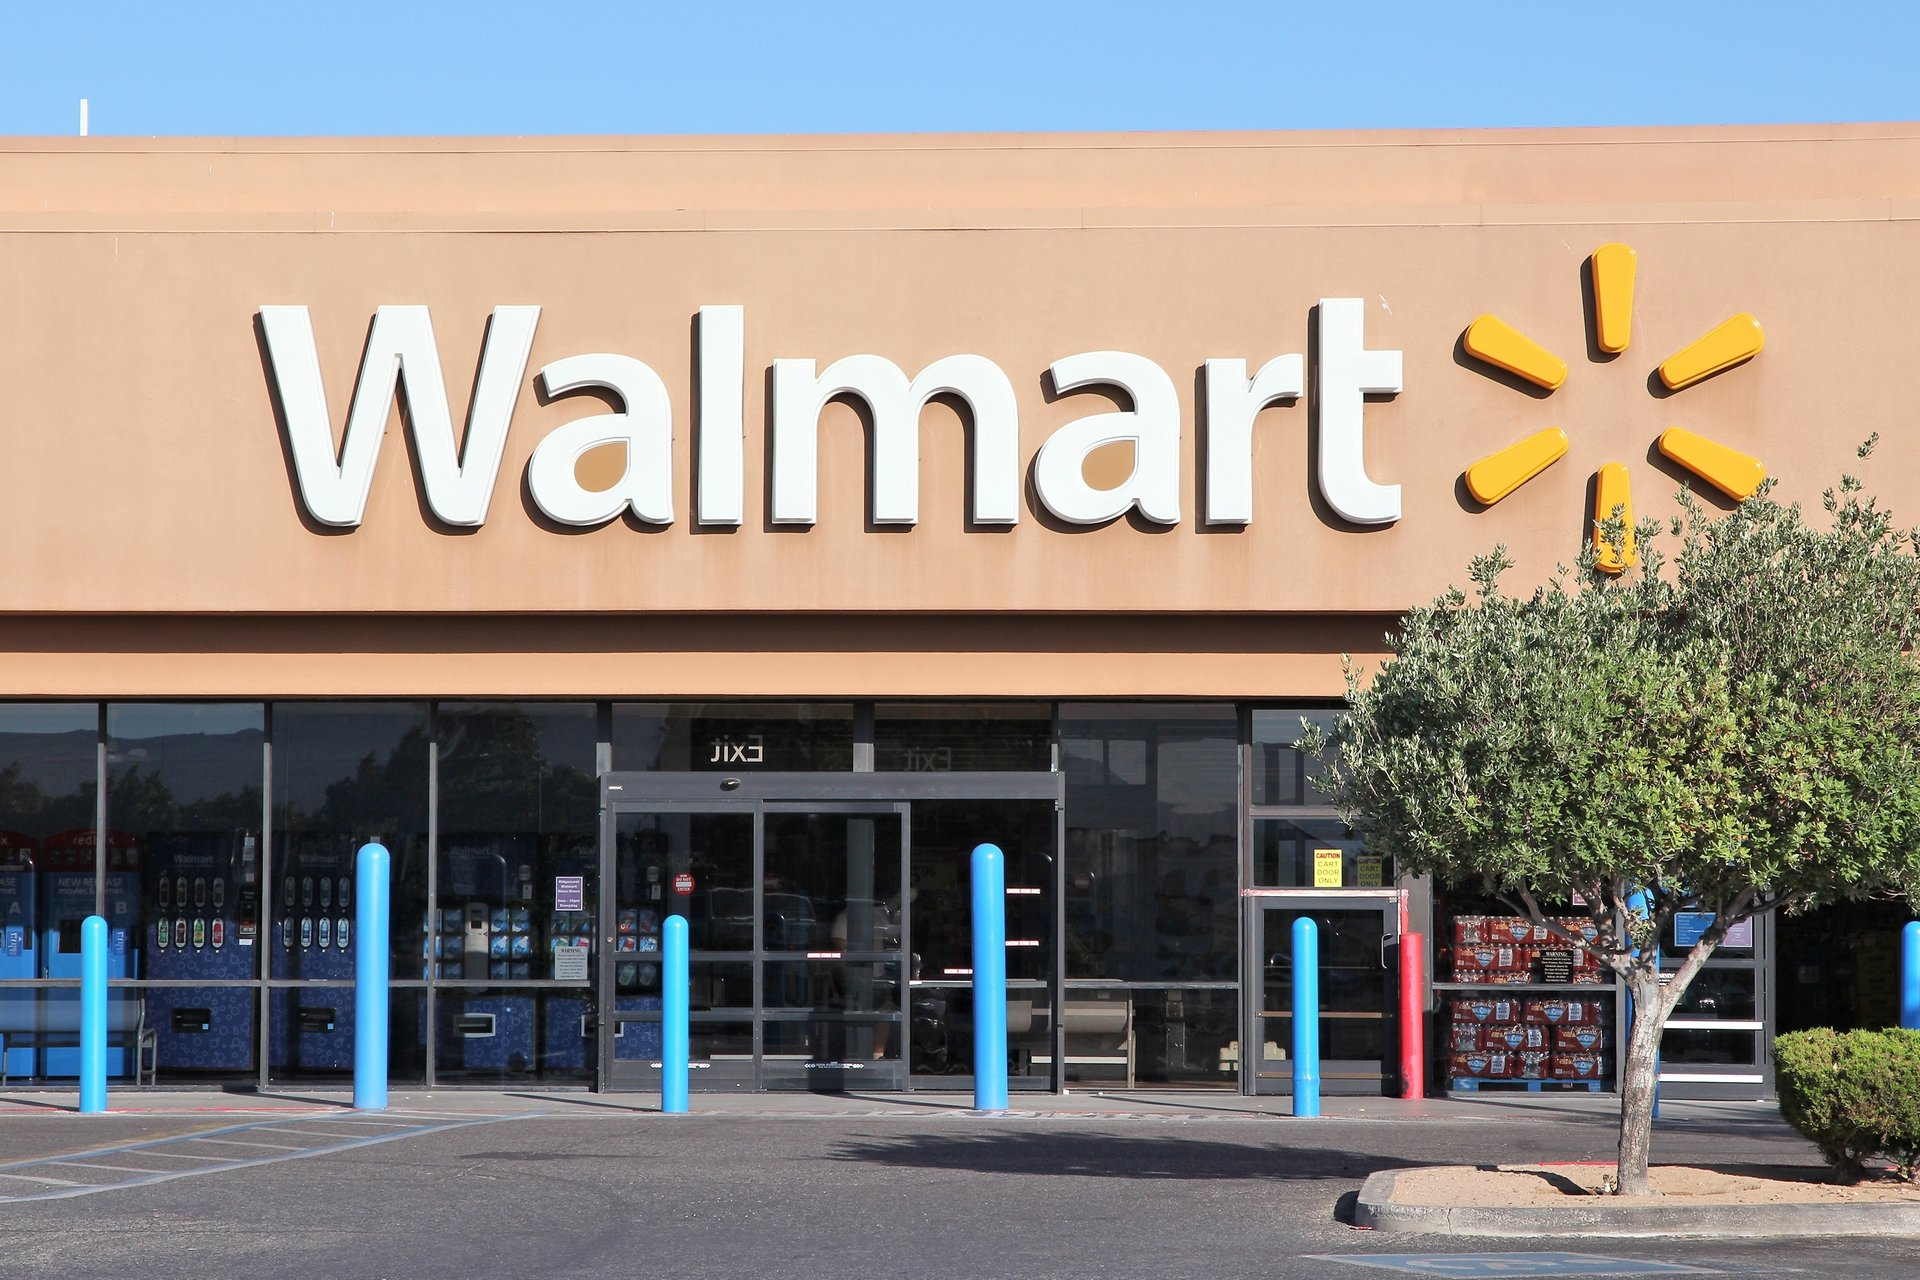 Walmart store in Ridgecrest, California